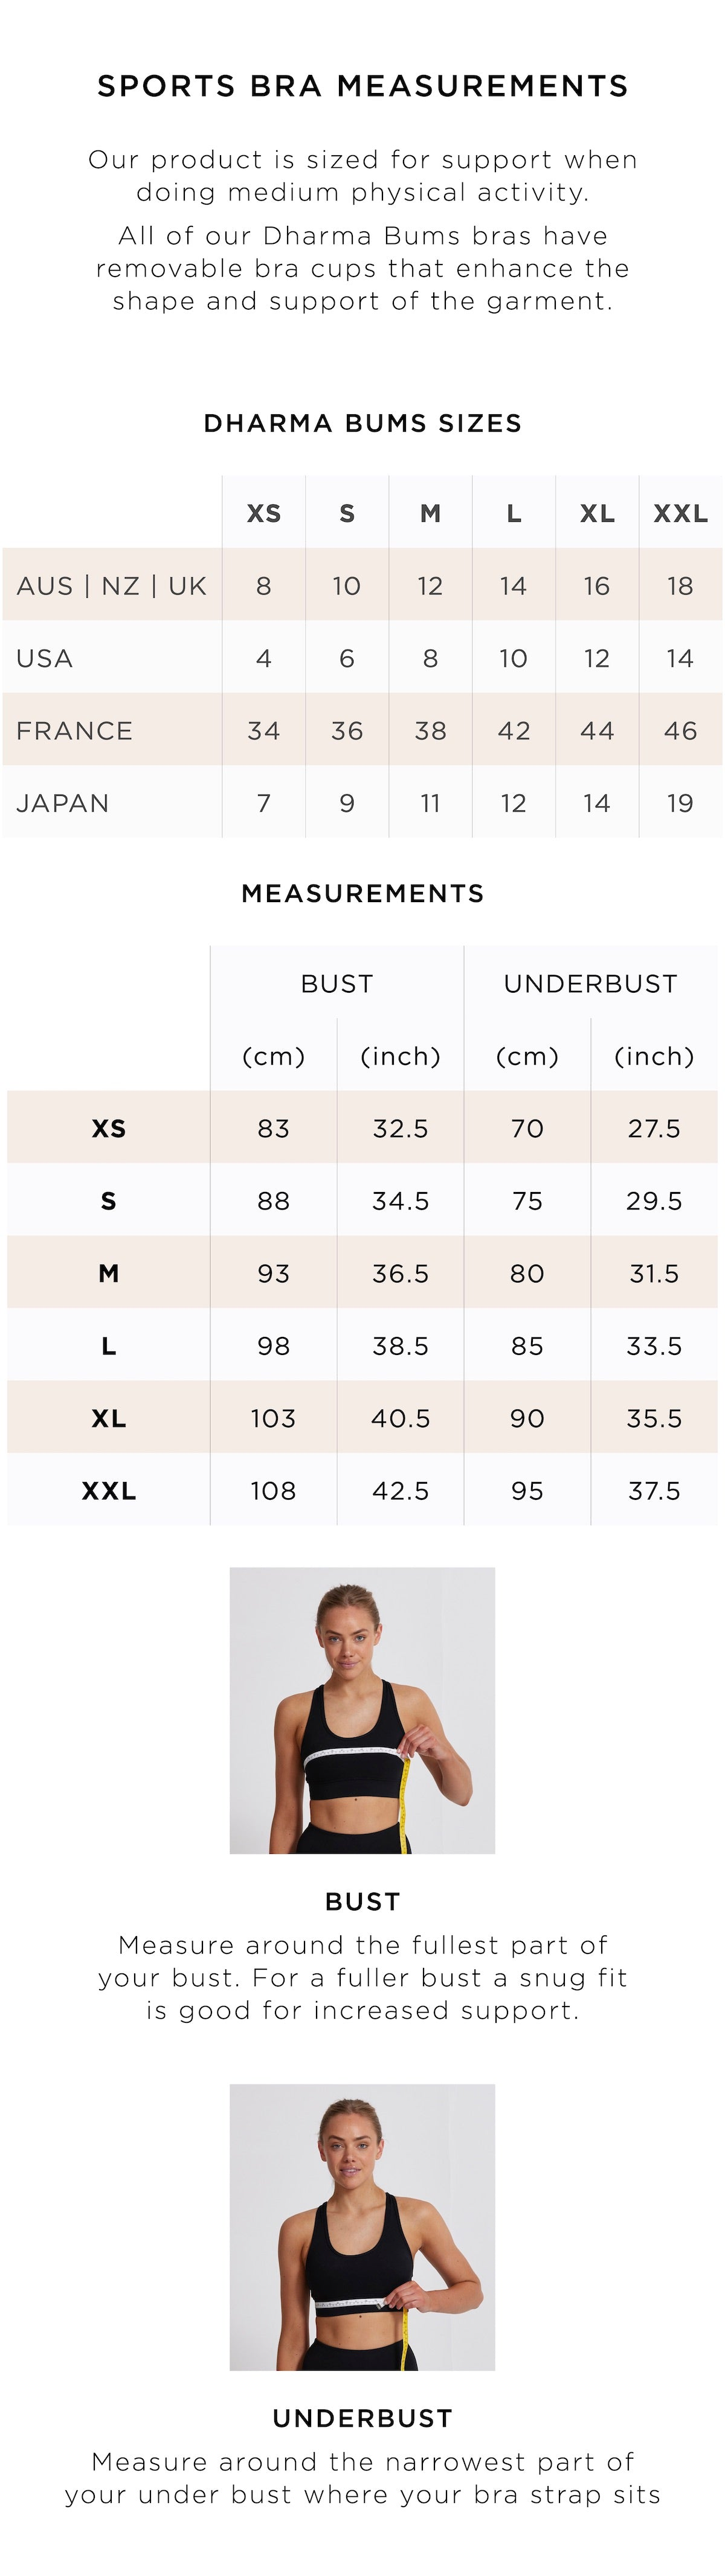 Sports Bra Size Guide